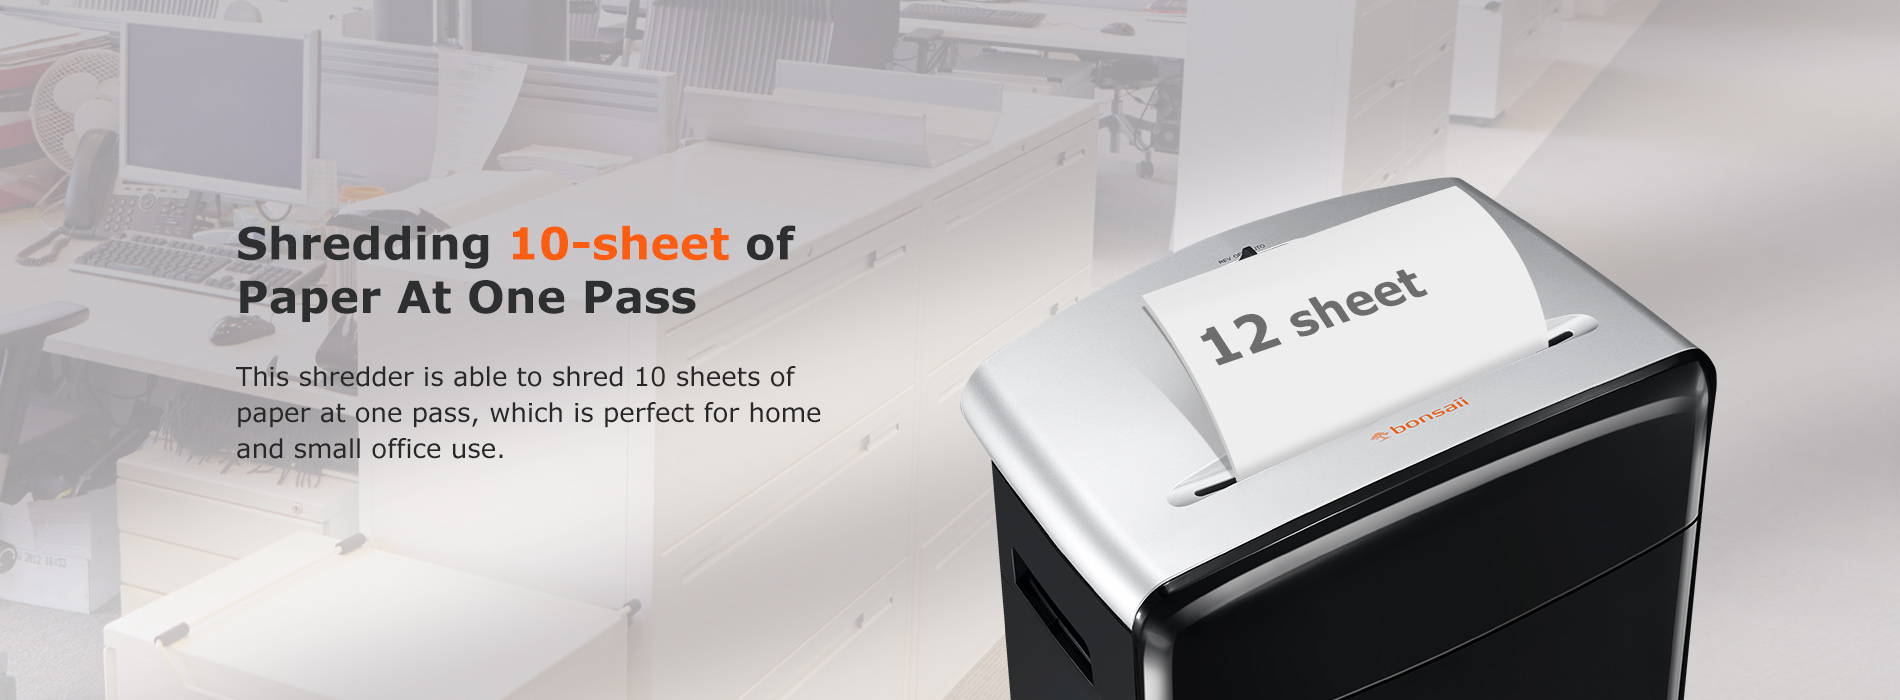 Shredding 10-sheet of Paper At One Pass This shredder is able to shred 10 sheets of paper at one pass, which is perfect for home and small office use.